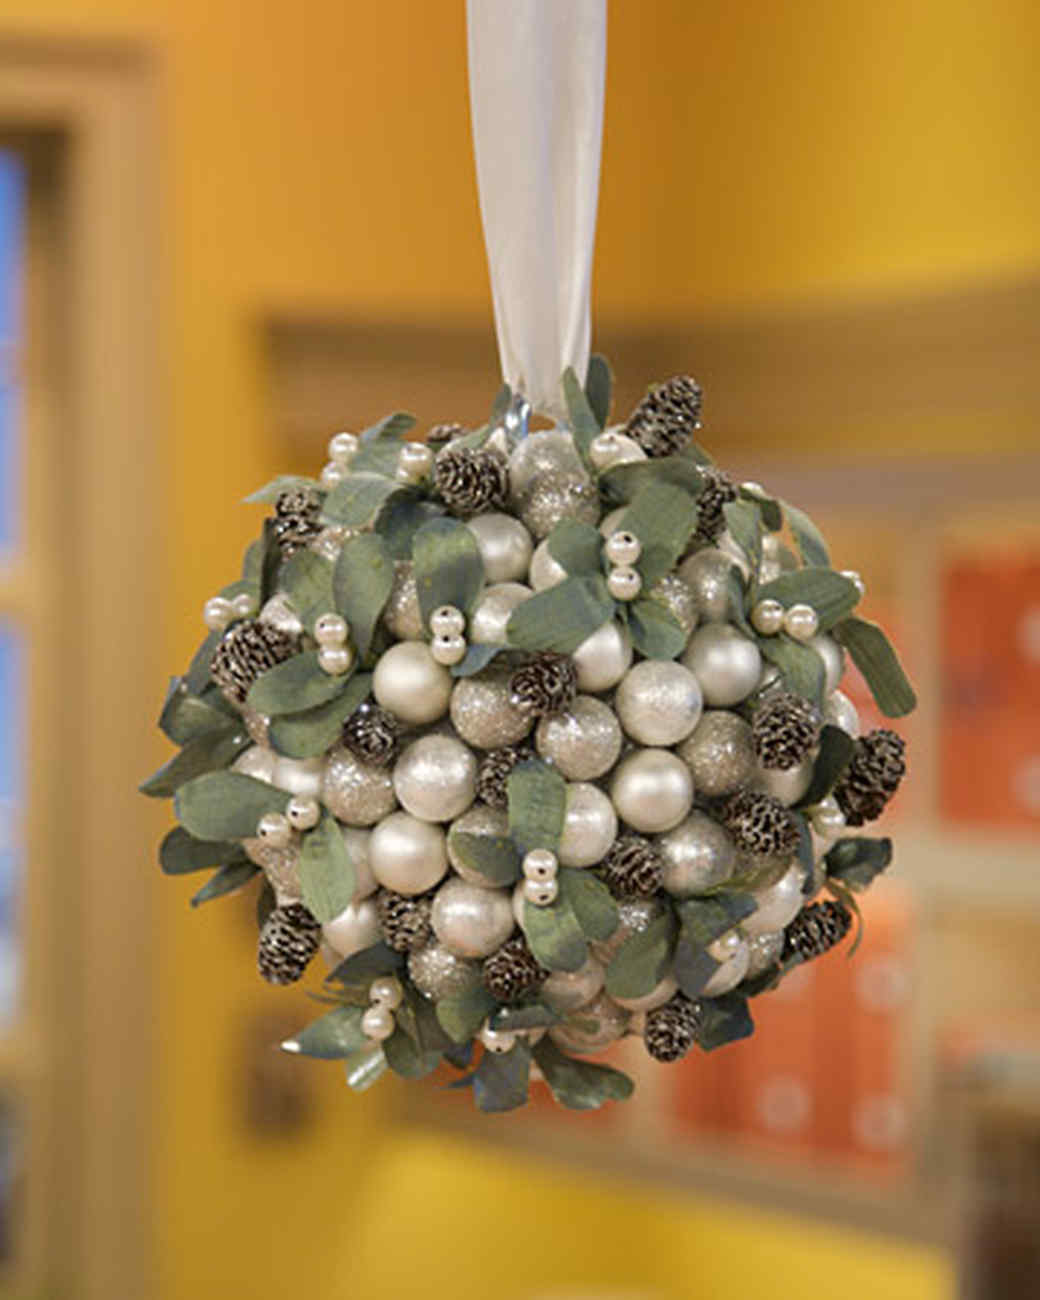 4048_112108_mistletoeball.jpg